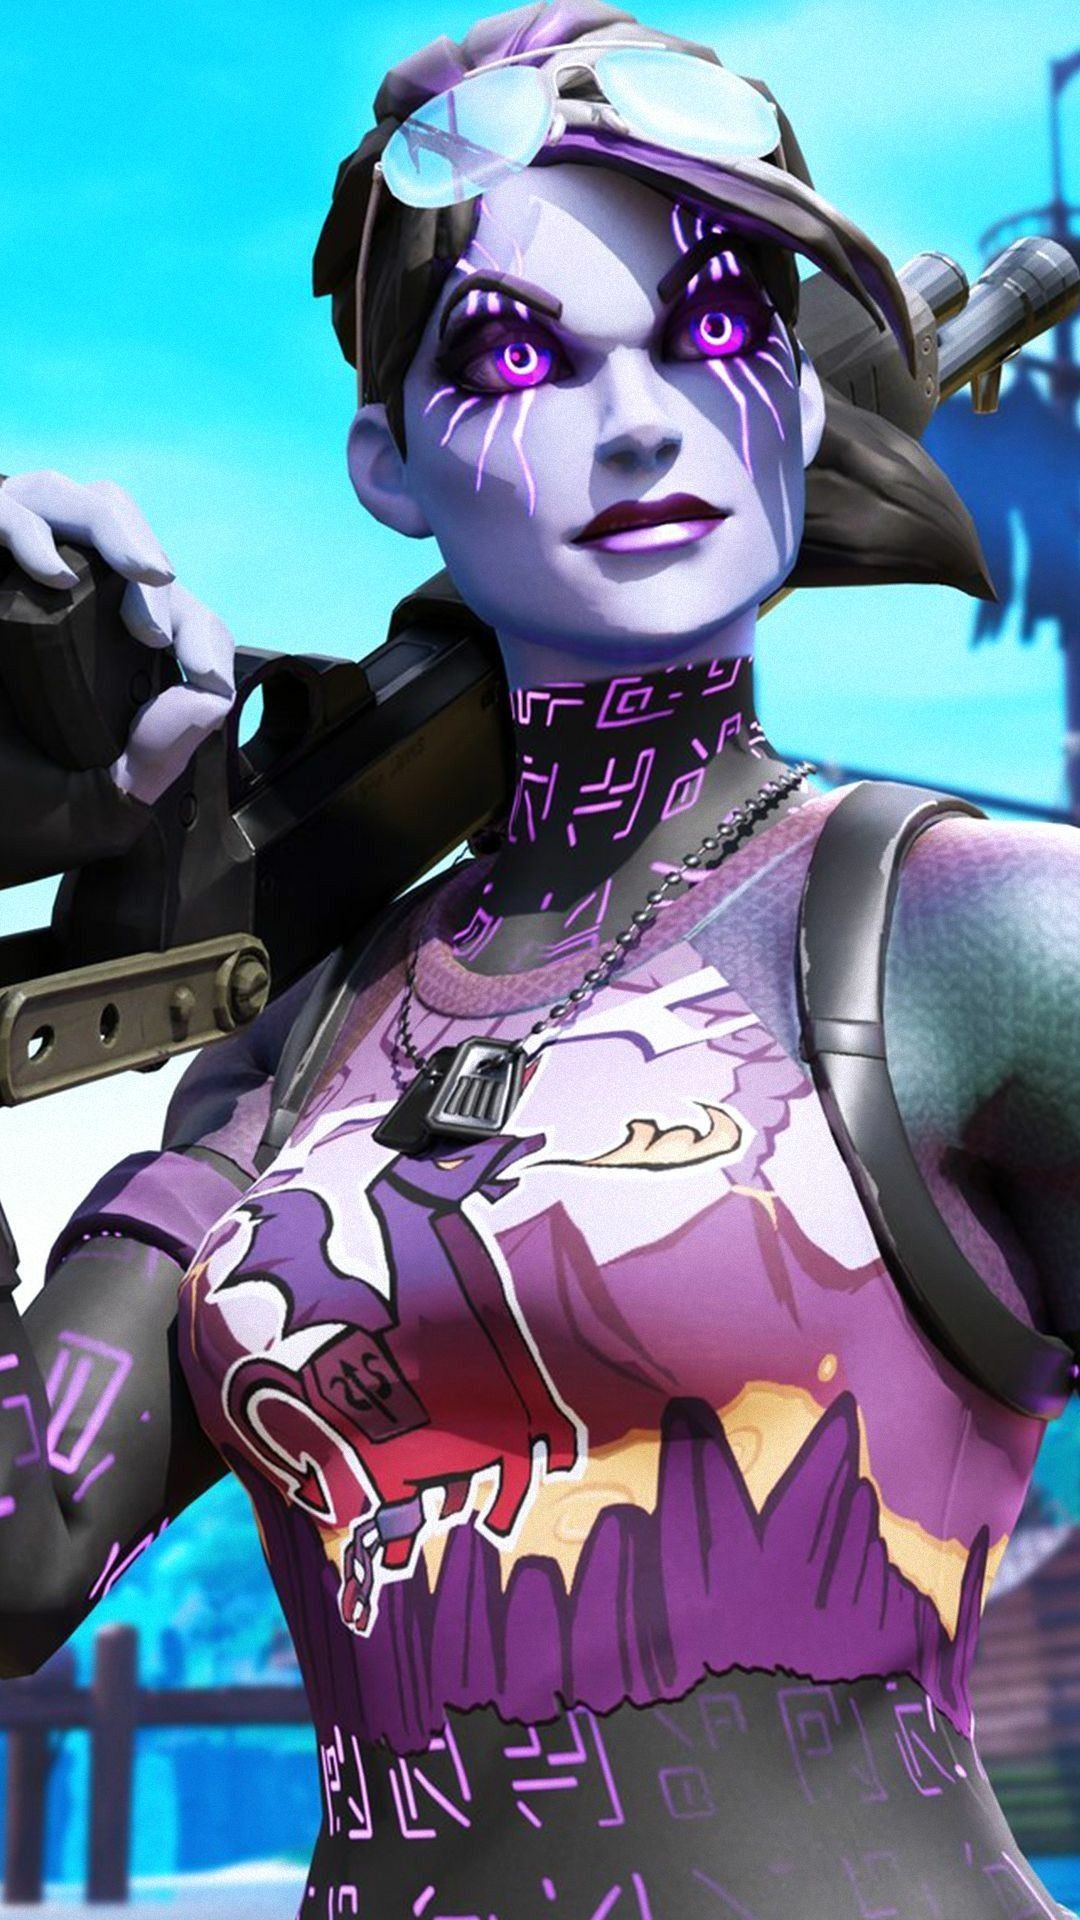 Dark Bomber Fortnite Skin Wallpaper Gaming Wallpapers Best Gaming Wallpapers Game Wallpaper Iphone